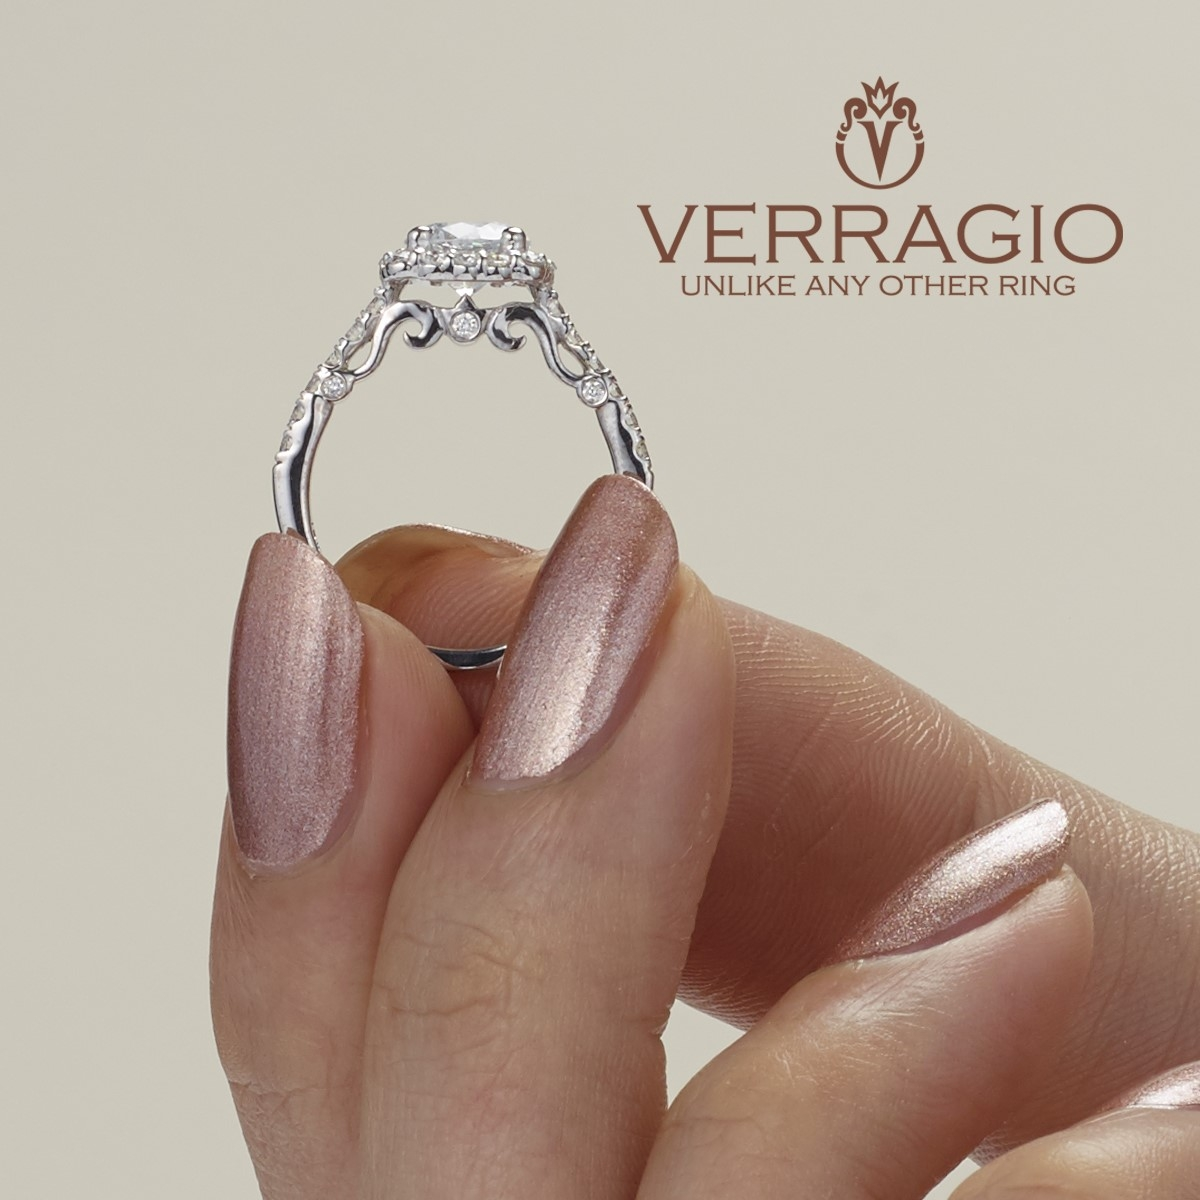 Verragio 18 Karat Insignia Engagement Ring INS-7047 Alternative View 2